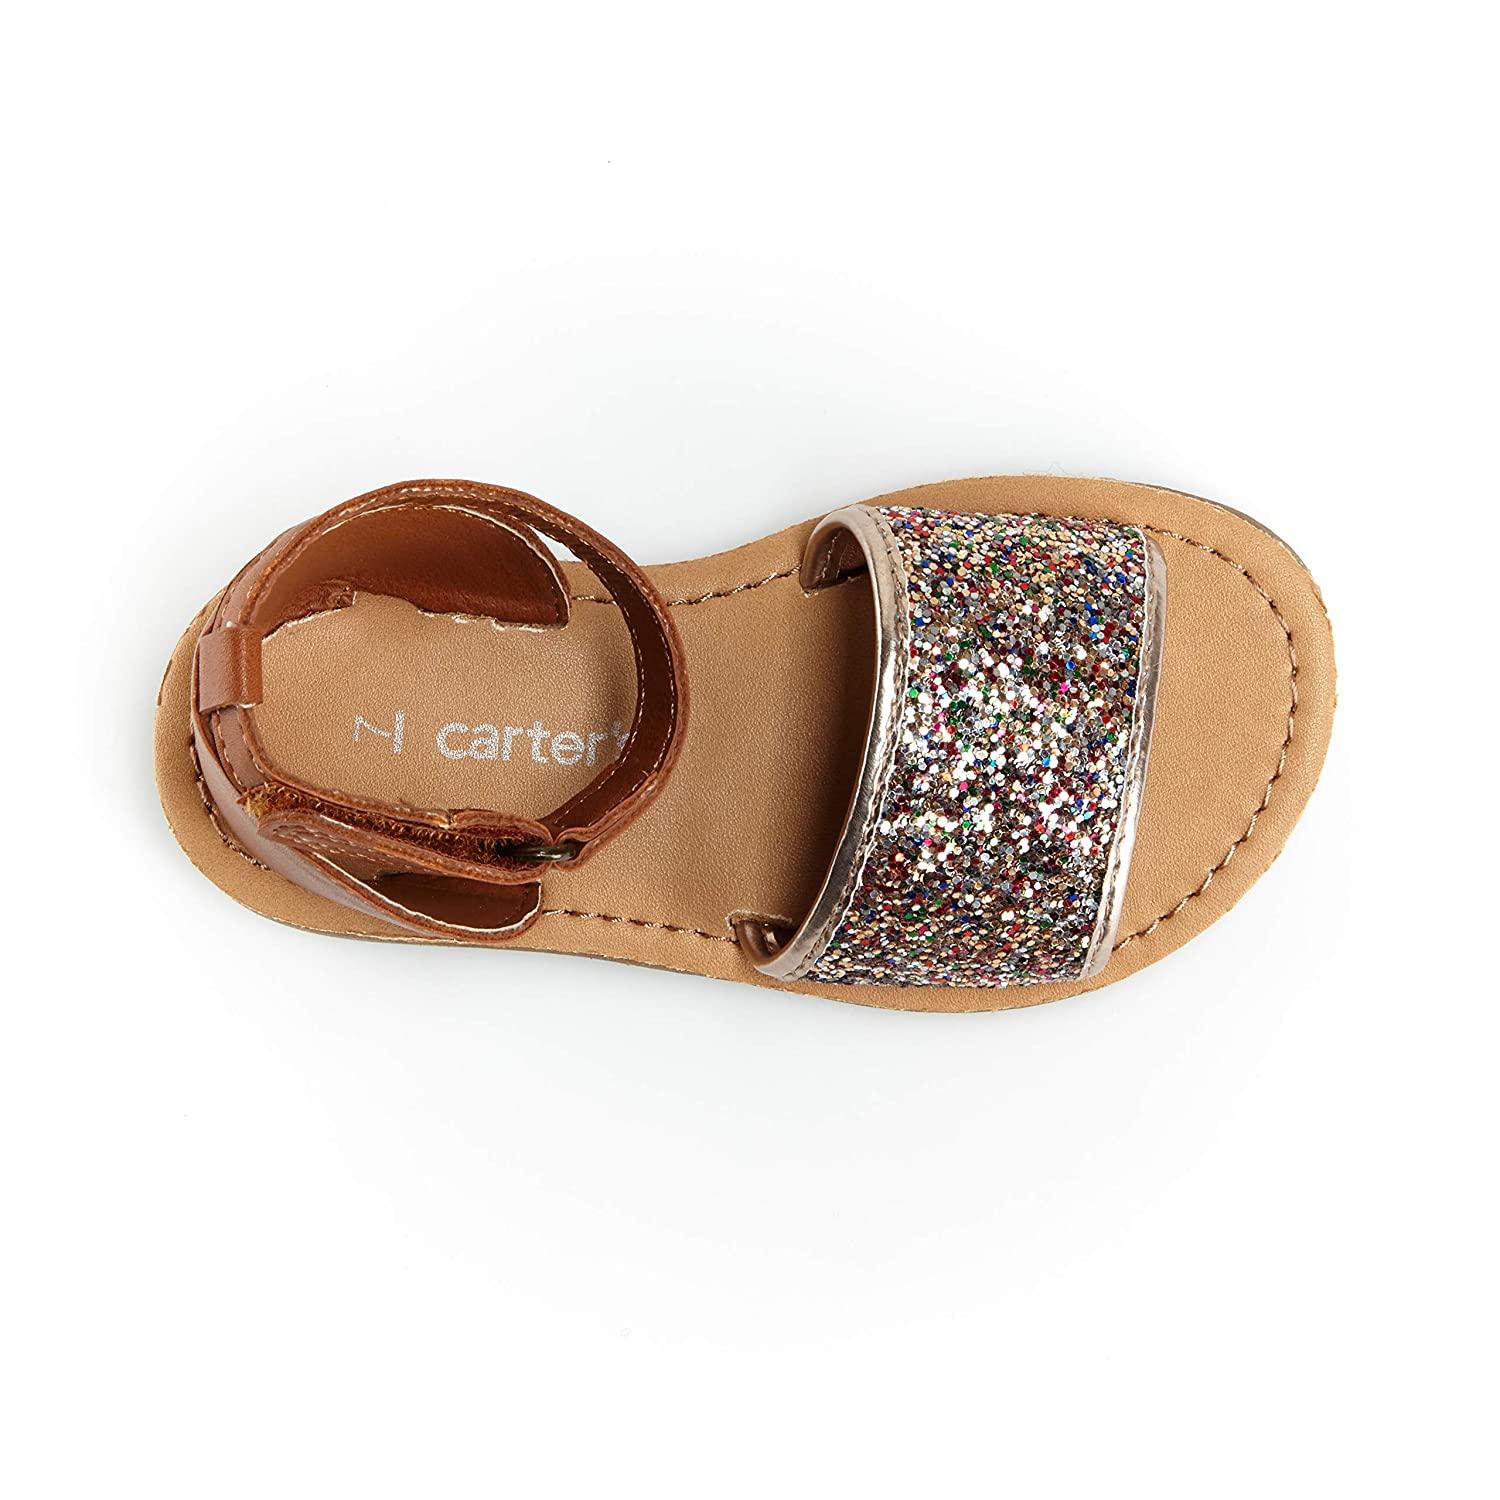 Multi carters Girls Emmie Embellished Dressy-Casual Sandal with Adjustable Strap 6 M US Toddler